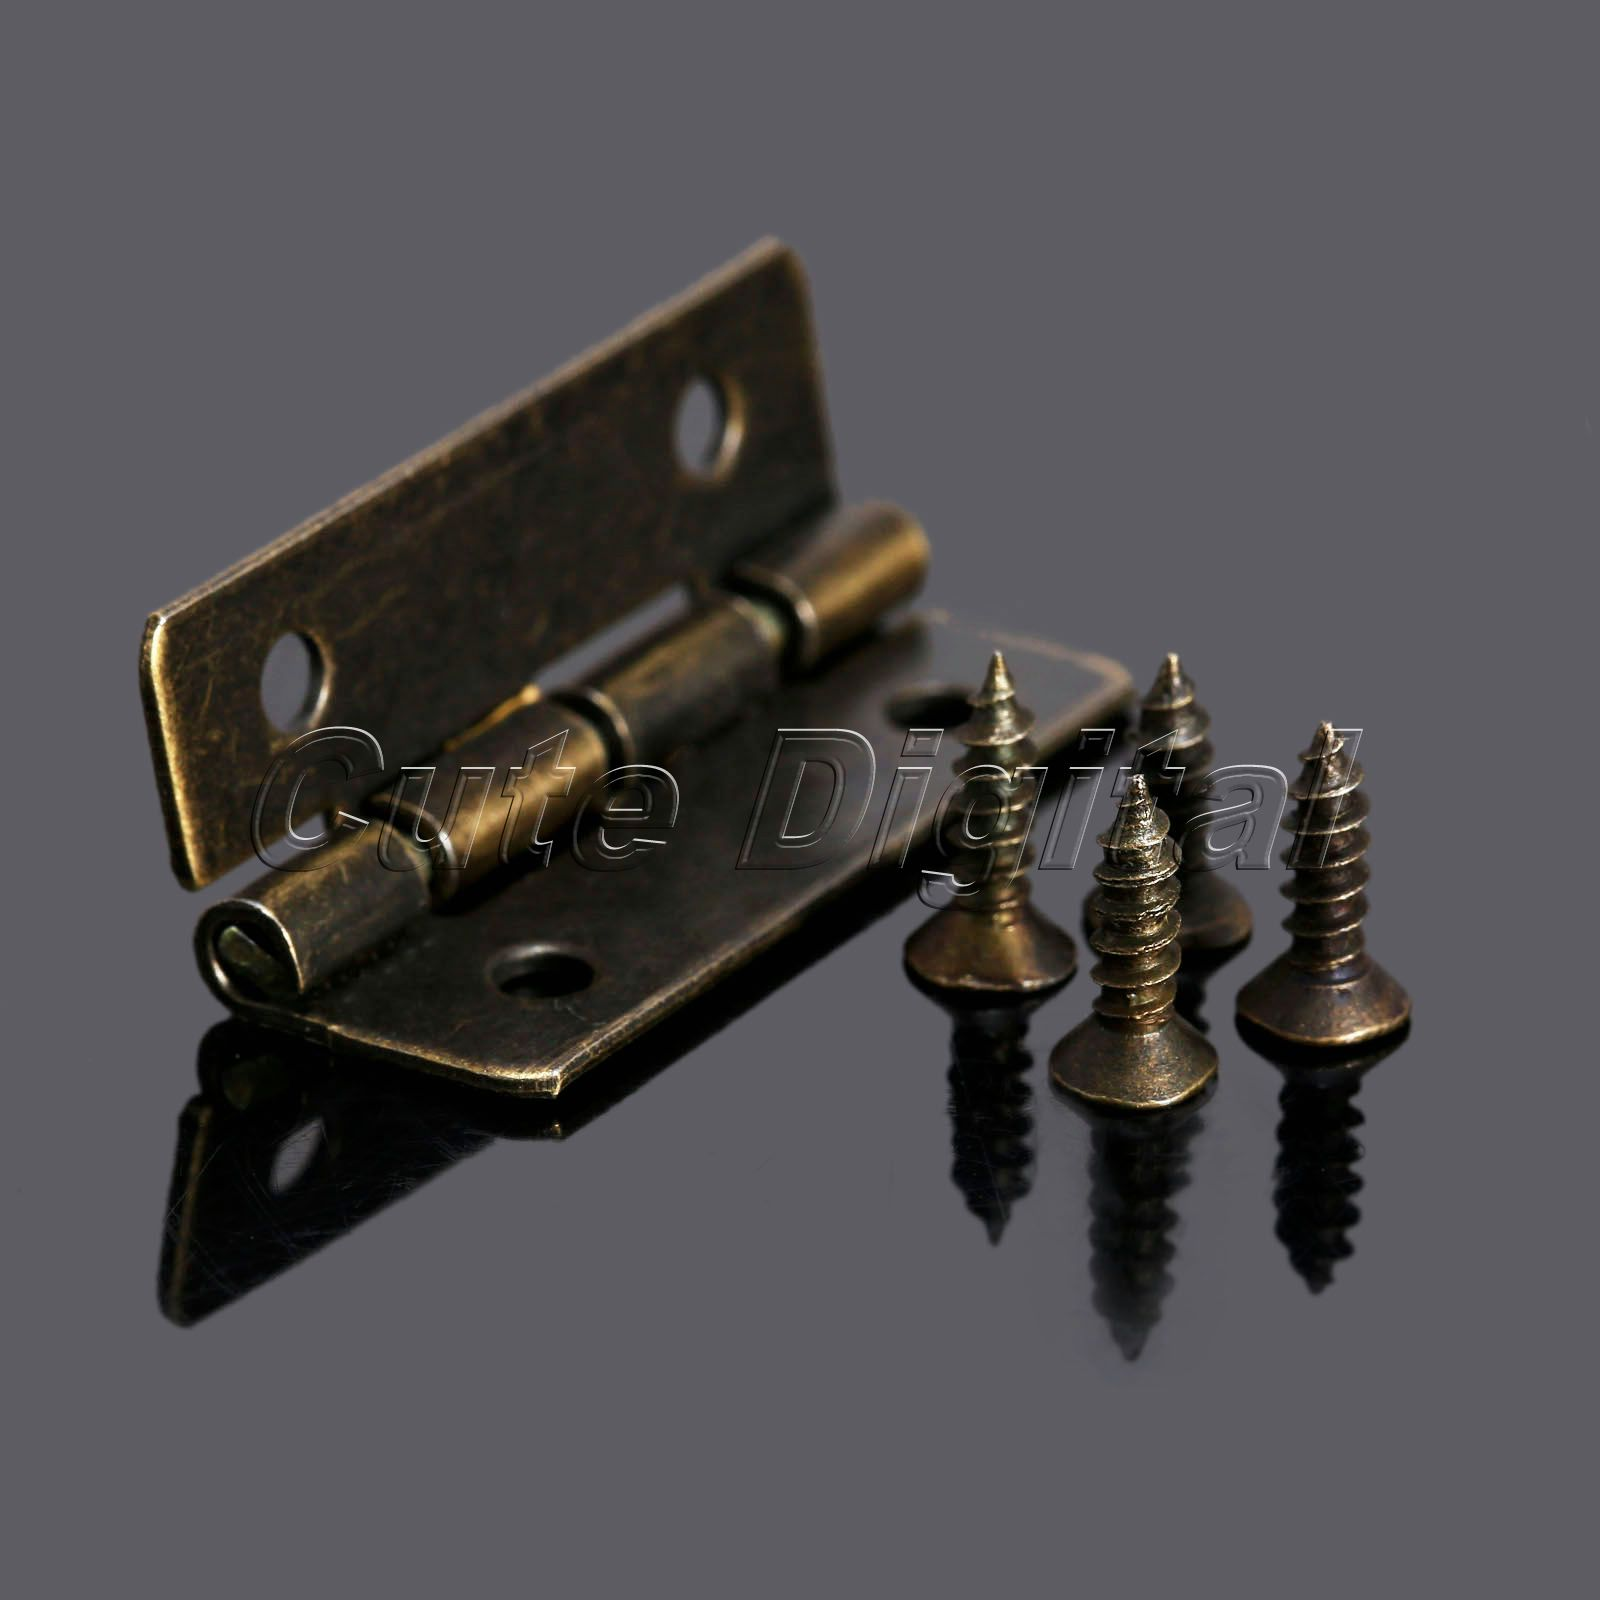 12pcs Antique Brass Vintage Jewelry Gift Wine Wood Box Hinge Furniture Fitting Cabinet Hinge Accessories for Woodworking w/Screw(China (Mainland))